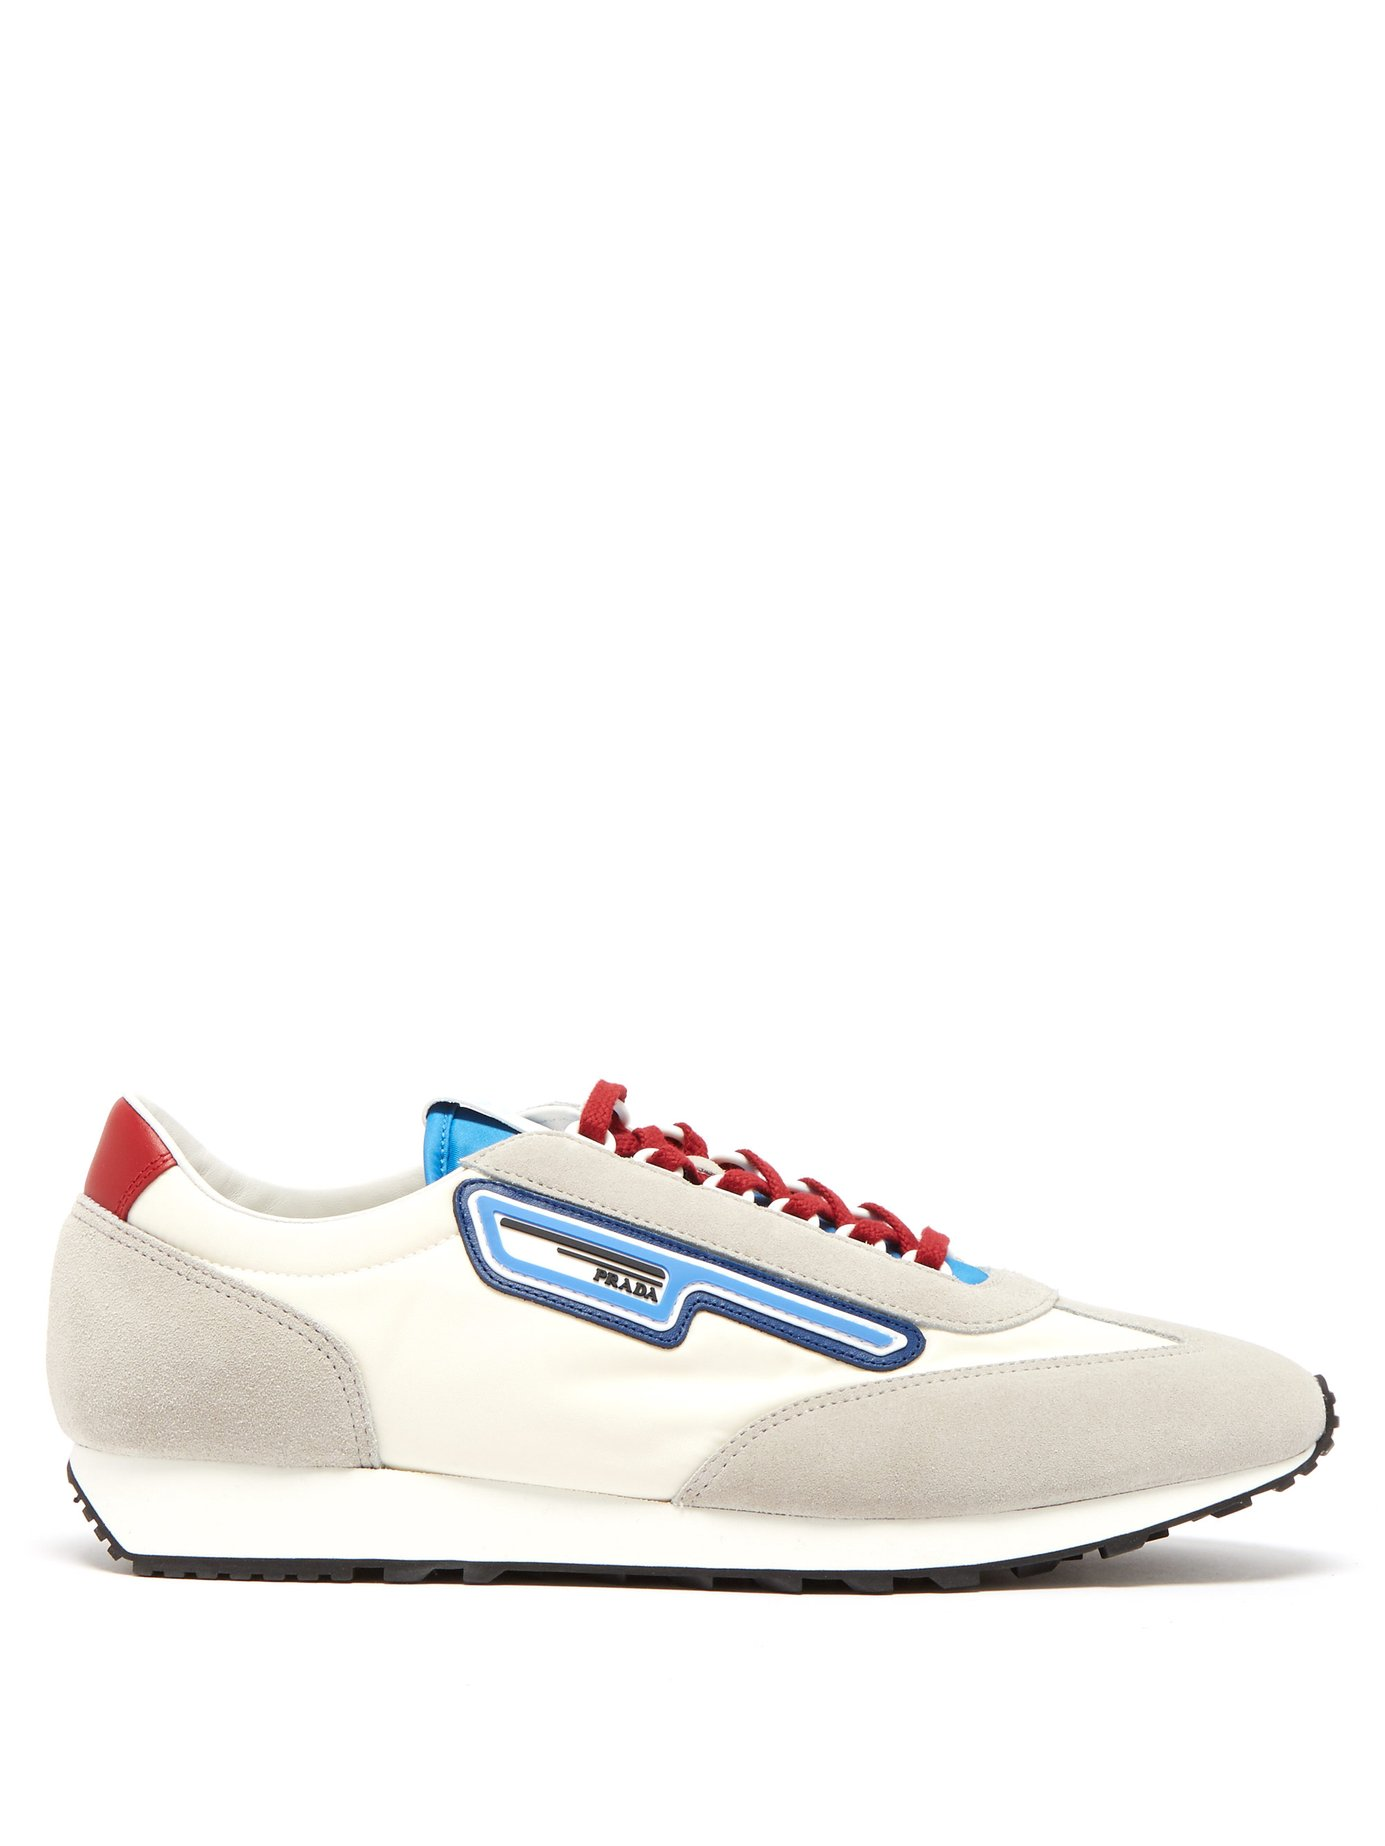 Prada sneakers - £515 - Strengthen your sneaker game this season with Prada's slightly spacey designs, at Matches Fashion.